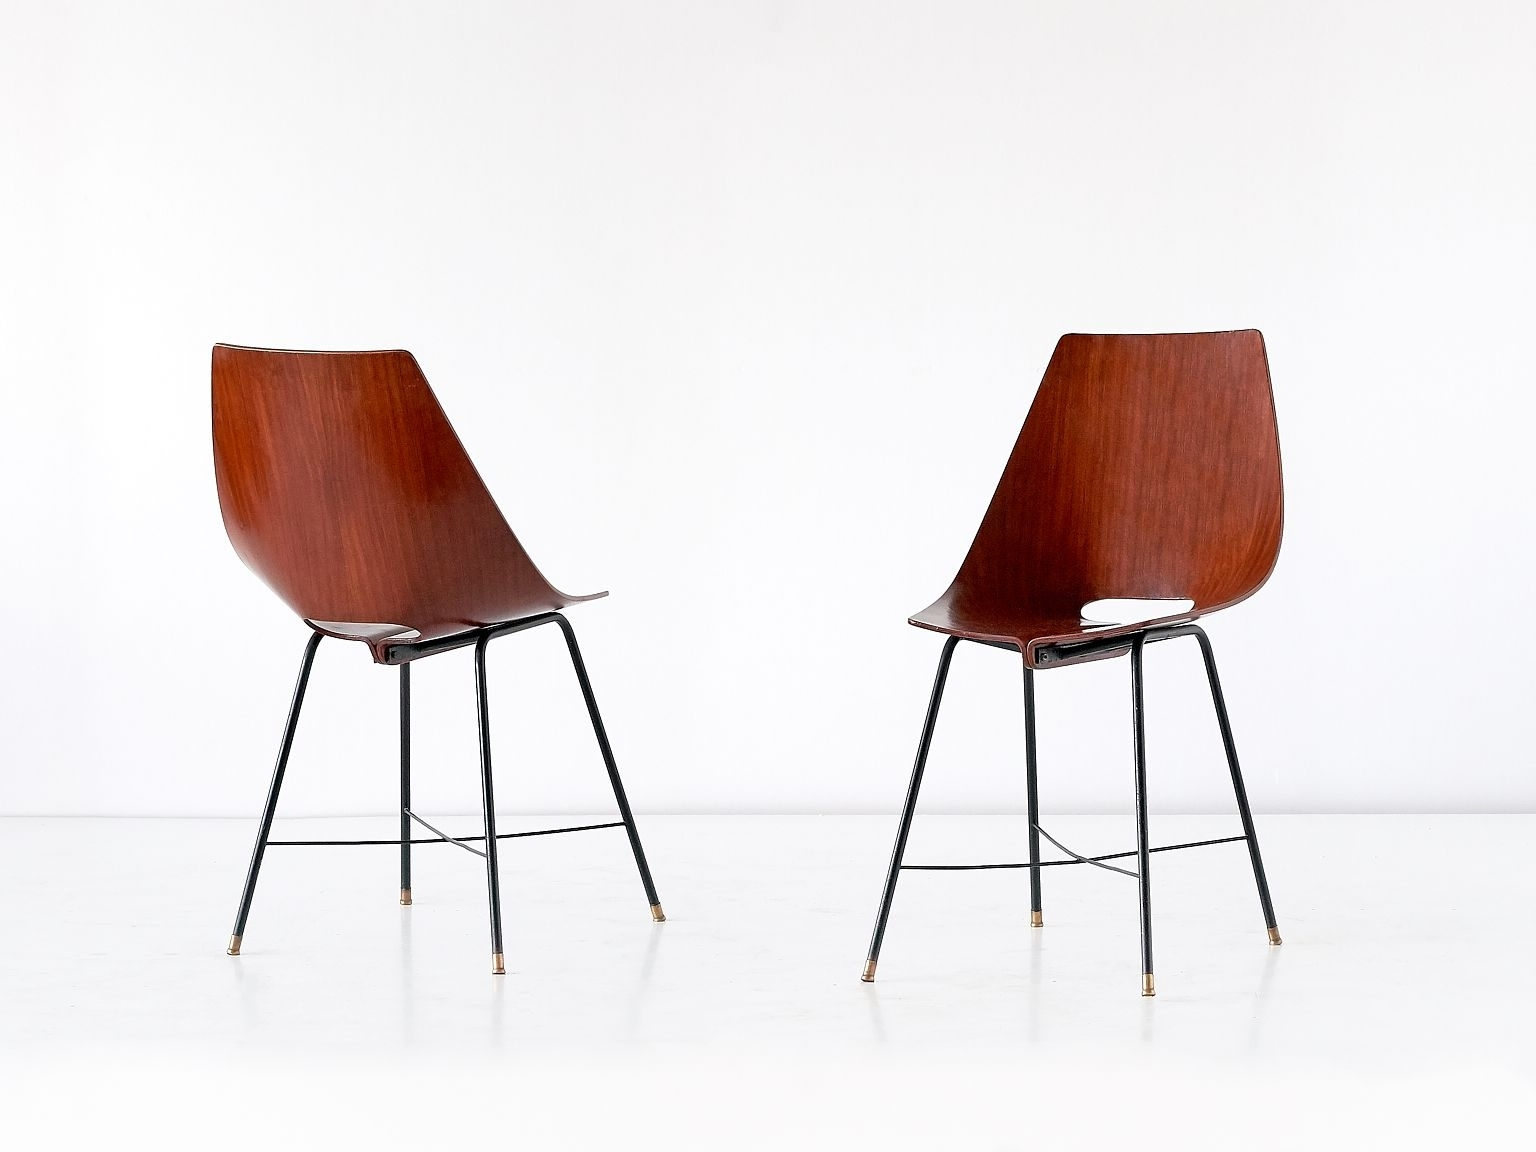 Widely Used Plywood & Metal Brown Dining Chairs For Italian 127 B Plywood Dining Chairs From Societá Compensati Curvati (View 18 of 20)